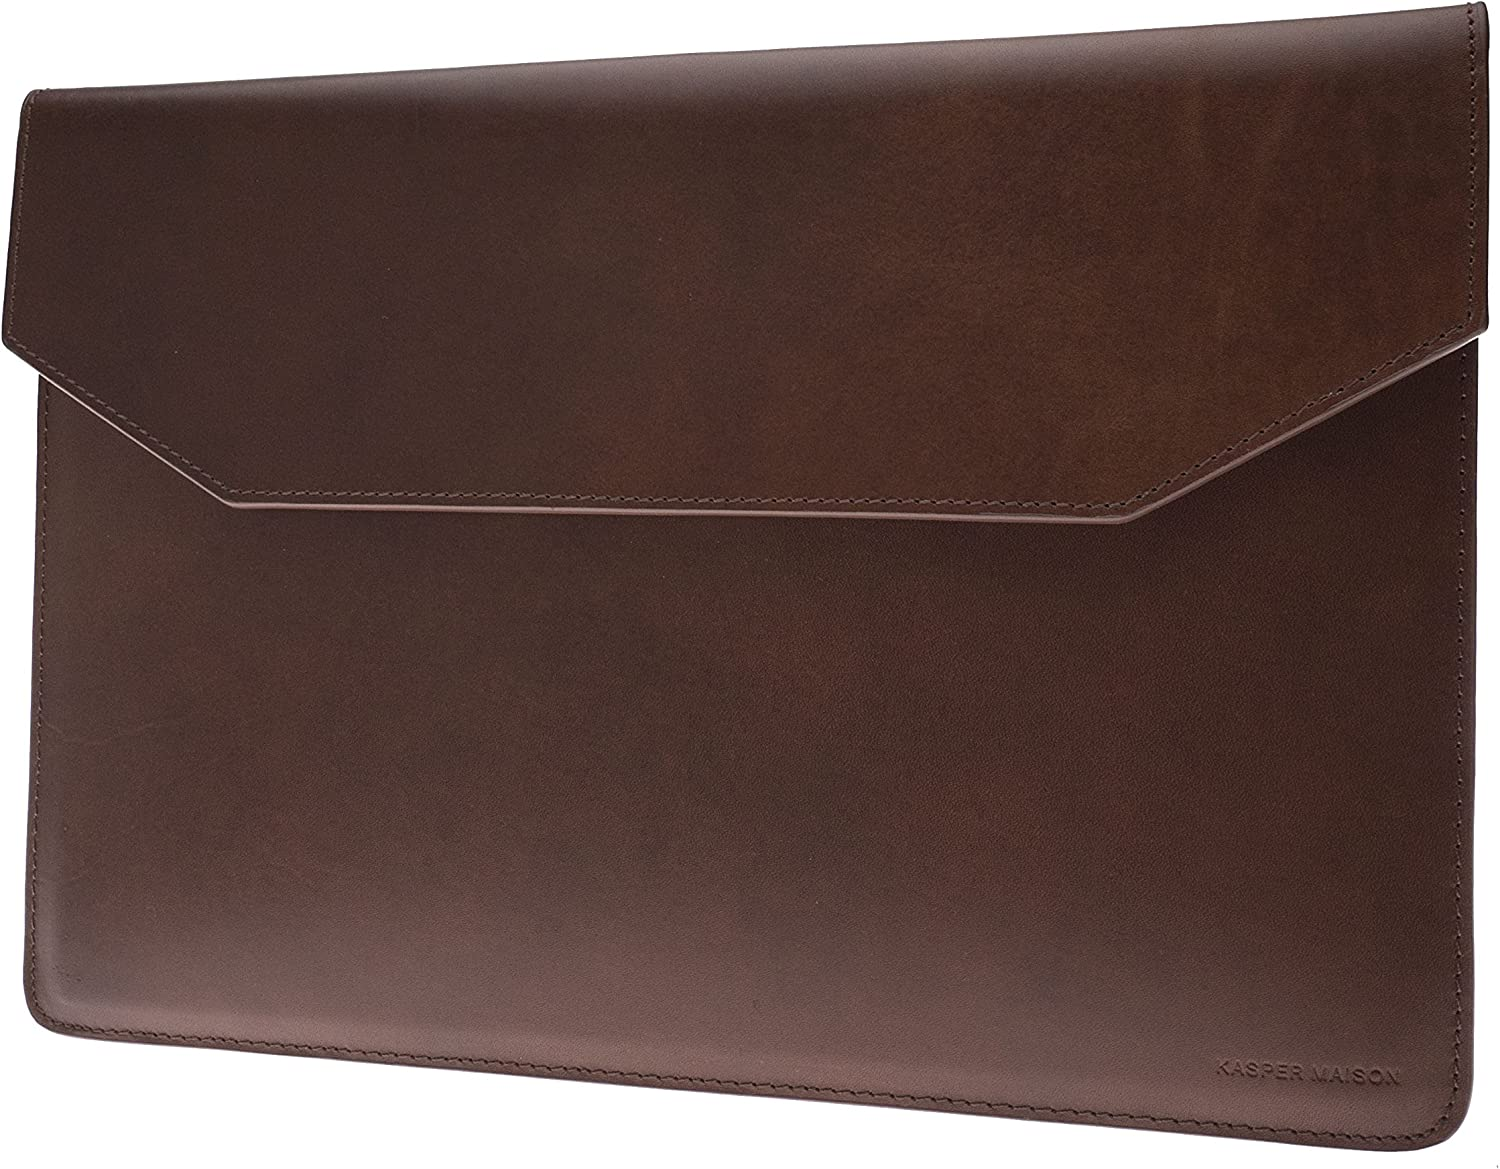 Kasper Maison 15 inch Premium Leather Laptop Sleeve for MacBook Pro 2016-2020 - Brown